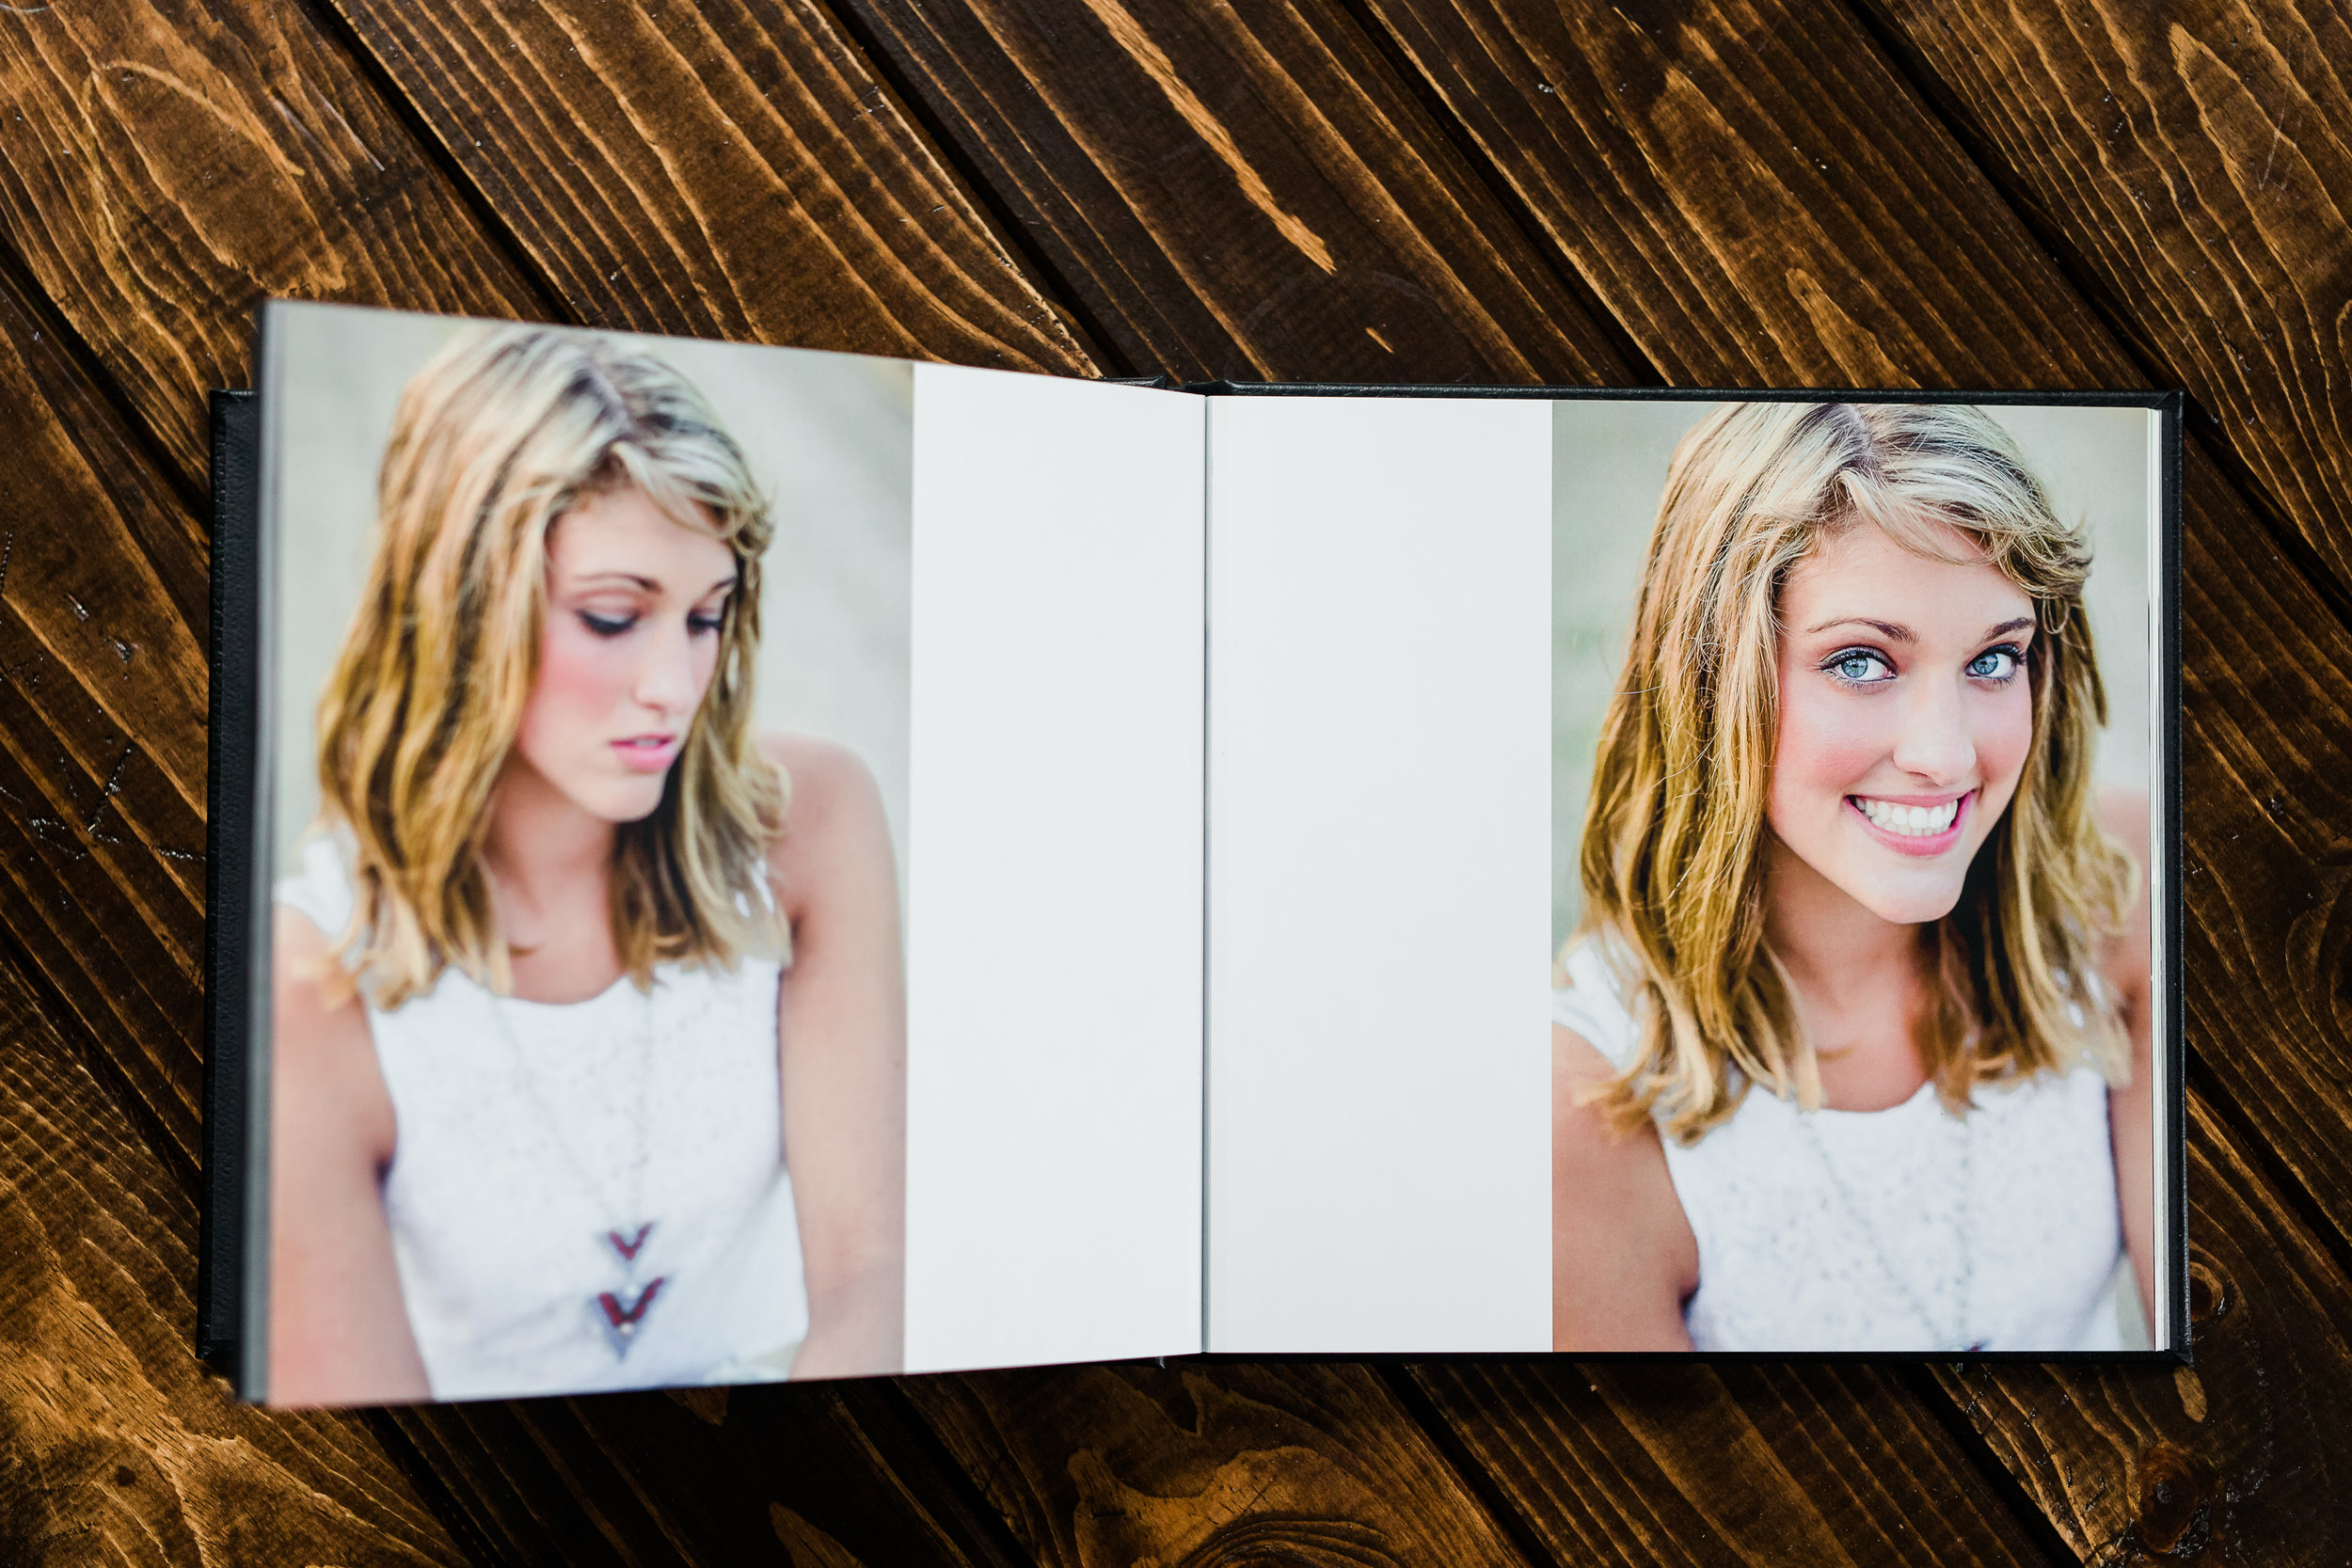 Guestbook - Perfect for events!8x8 inch, 10 spread book$125